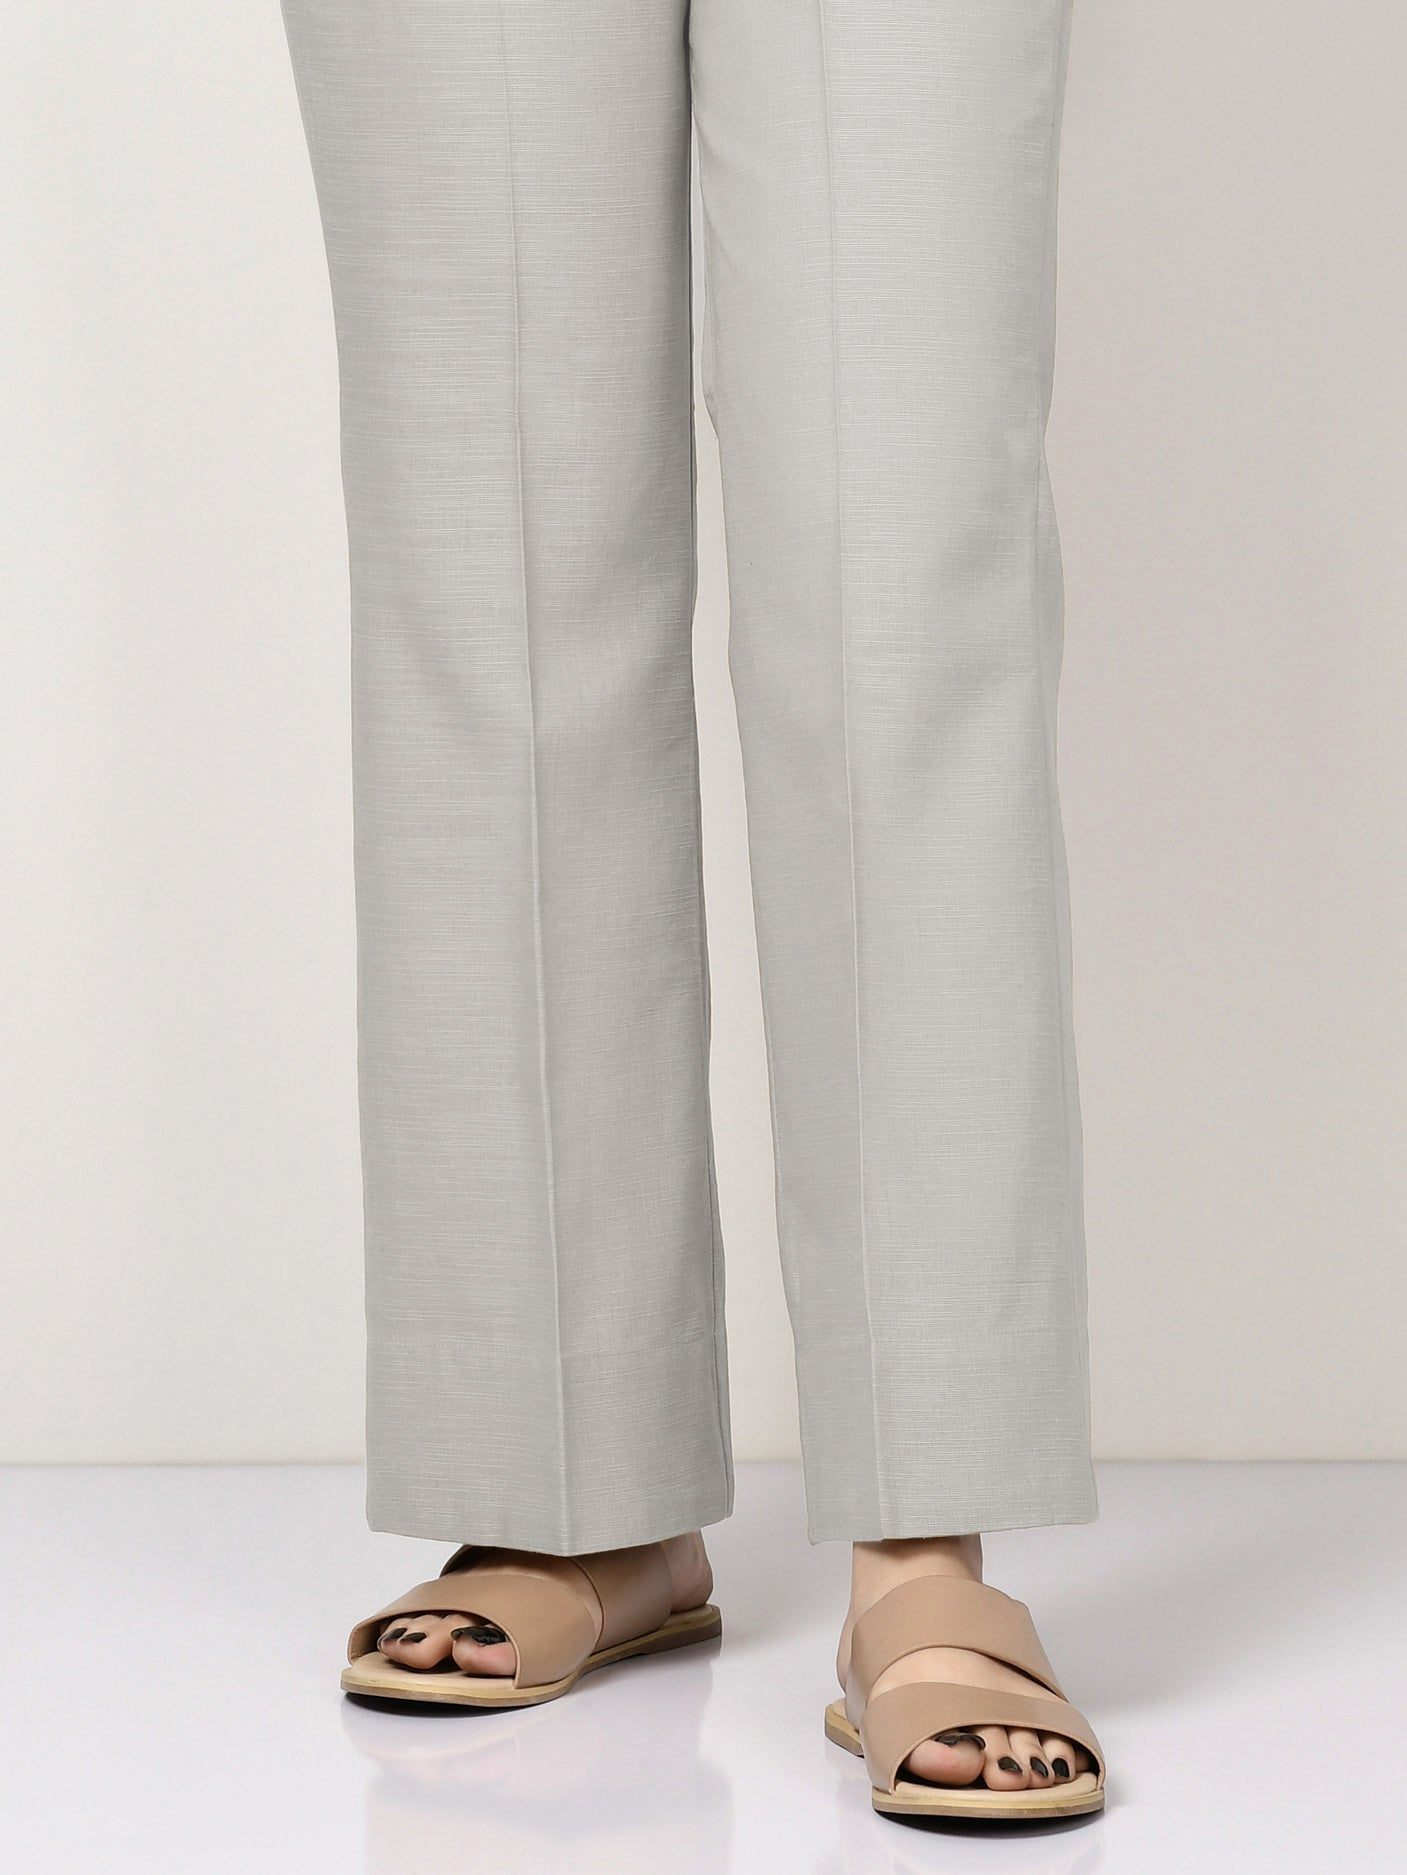 Unstitched Khaddar Trouser - Light Grey